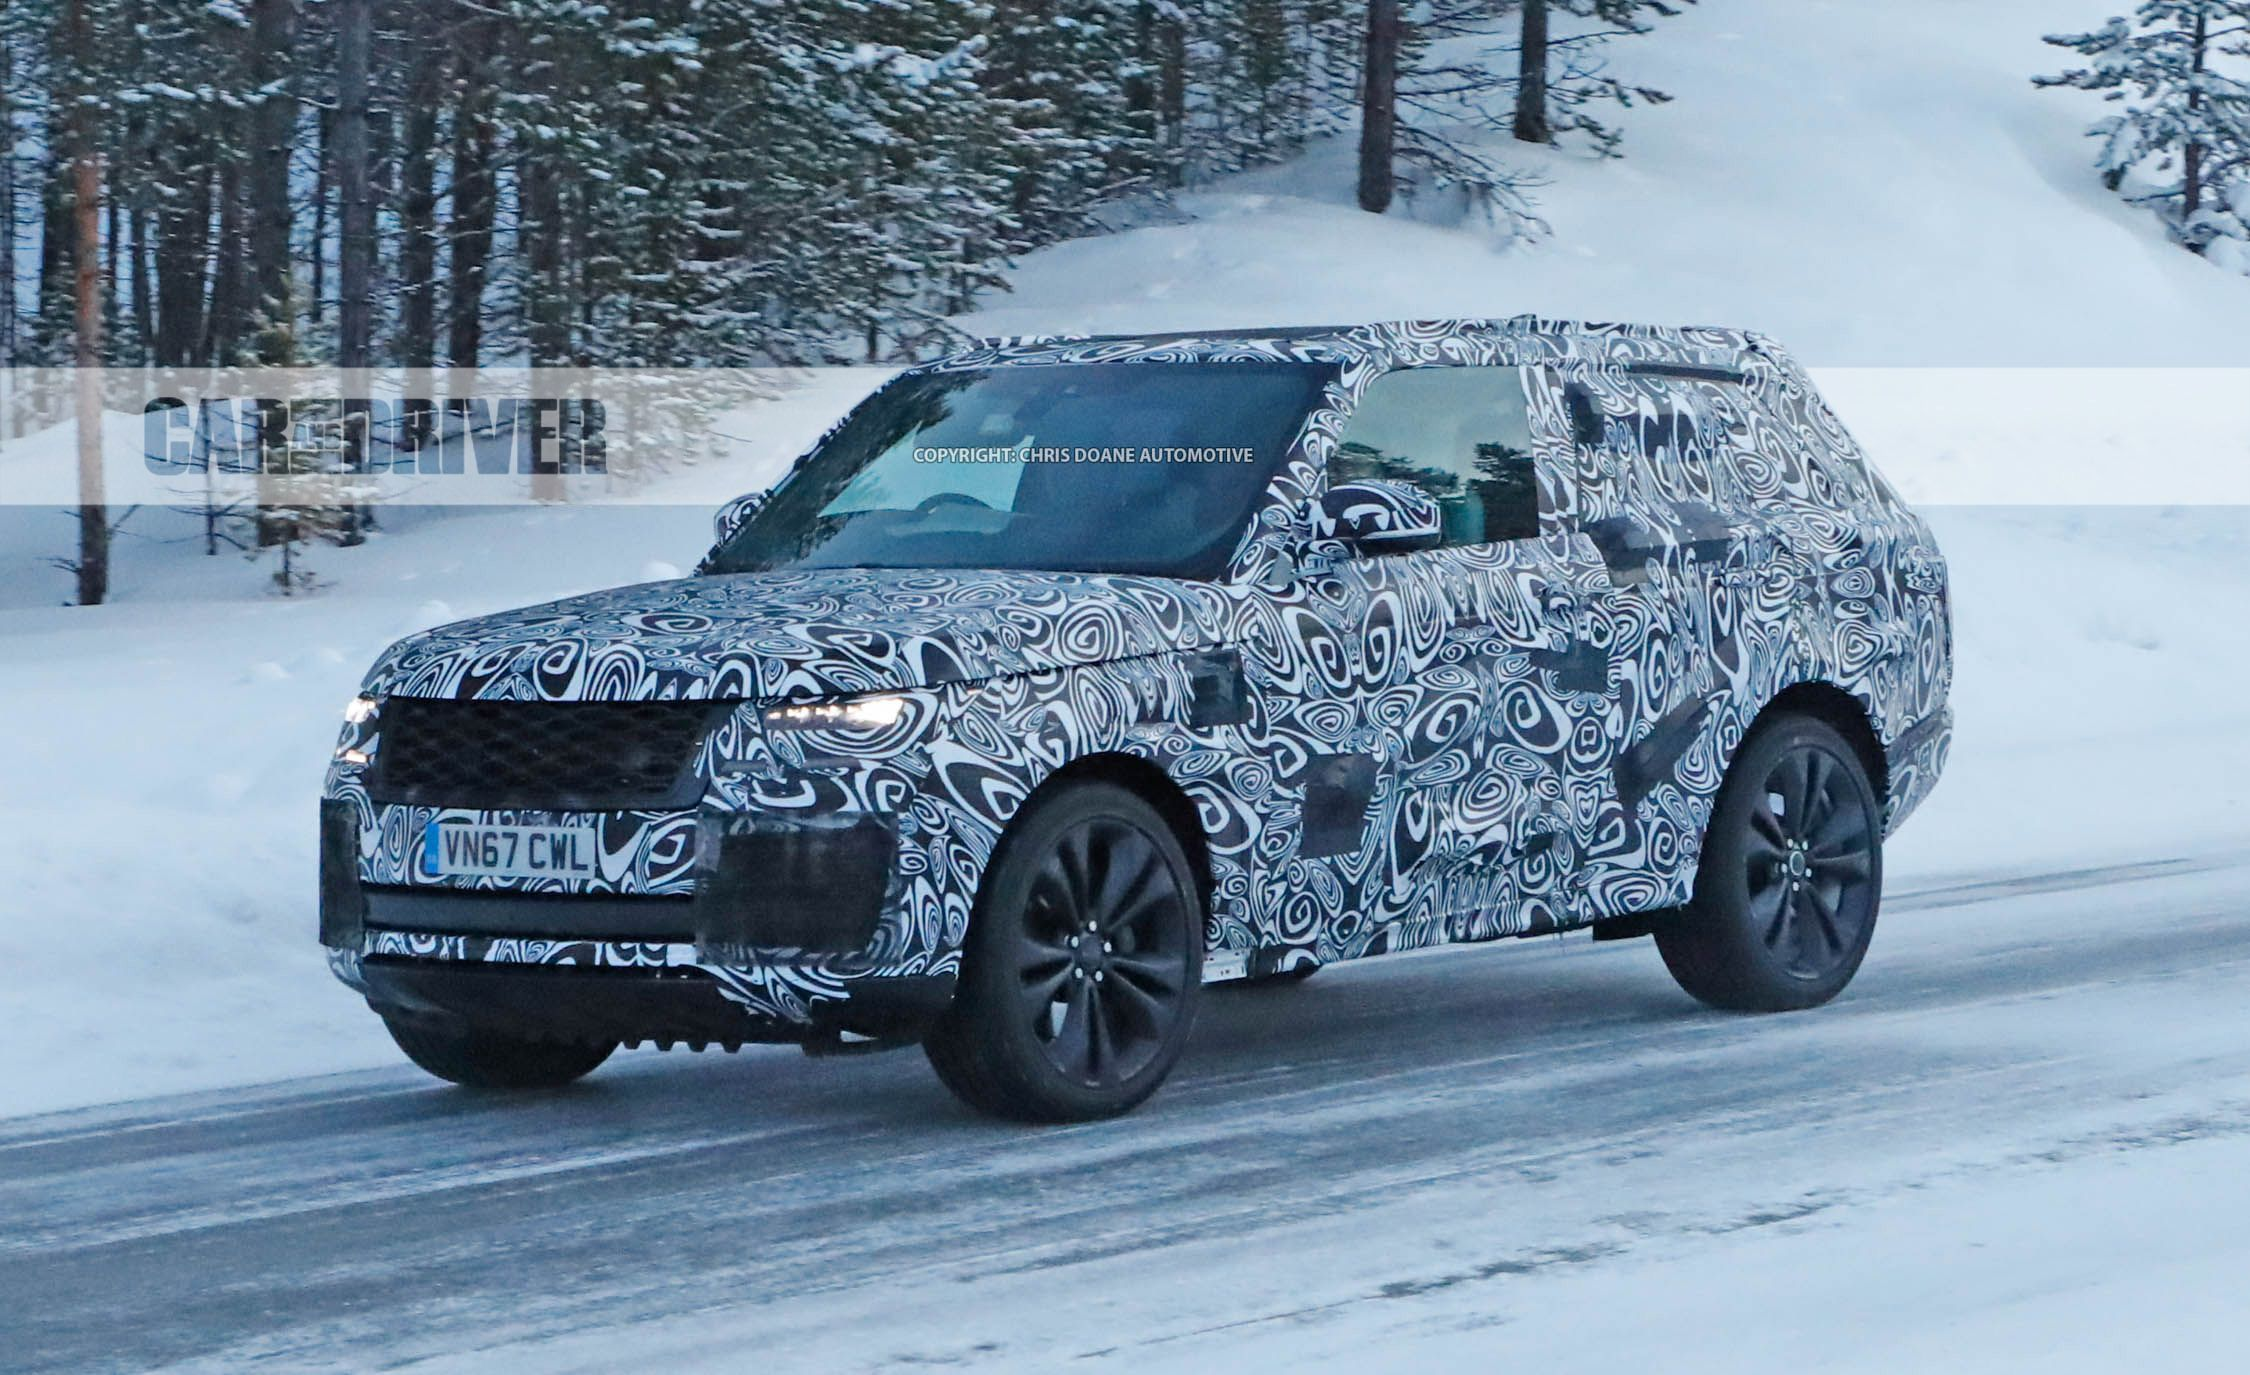 2018 Land Rover Range Rover Evoque >> 2020 Range Rover SV Coupe Spied: Fewer Doors, More Exclusivity | News | Car and Driver